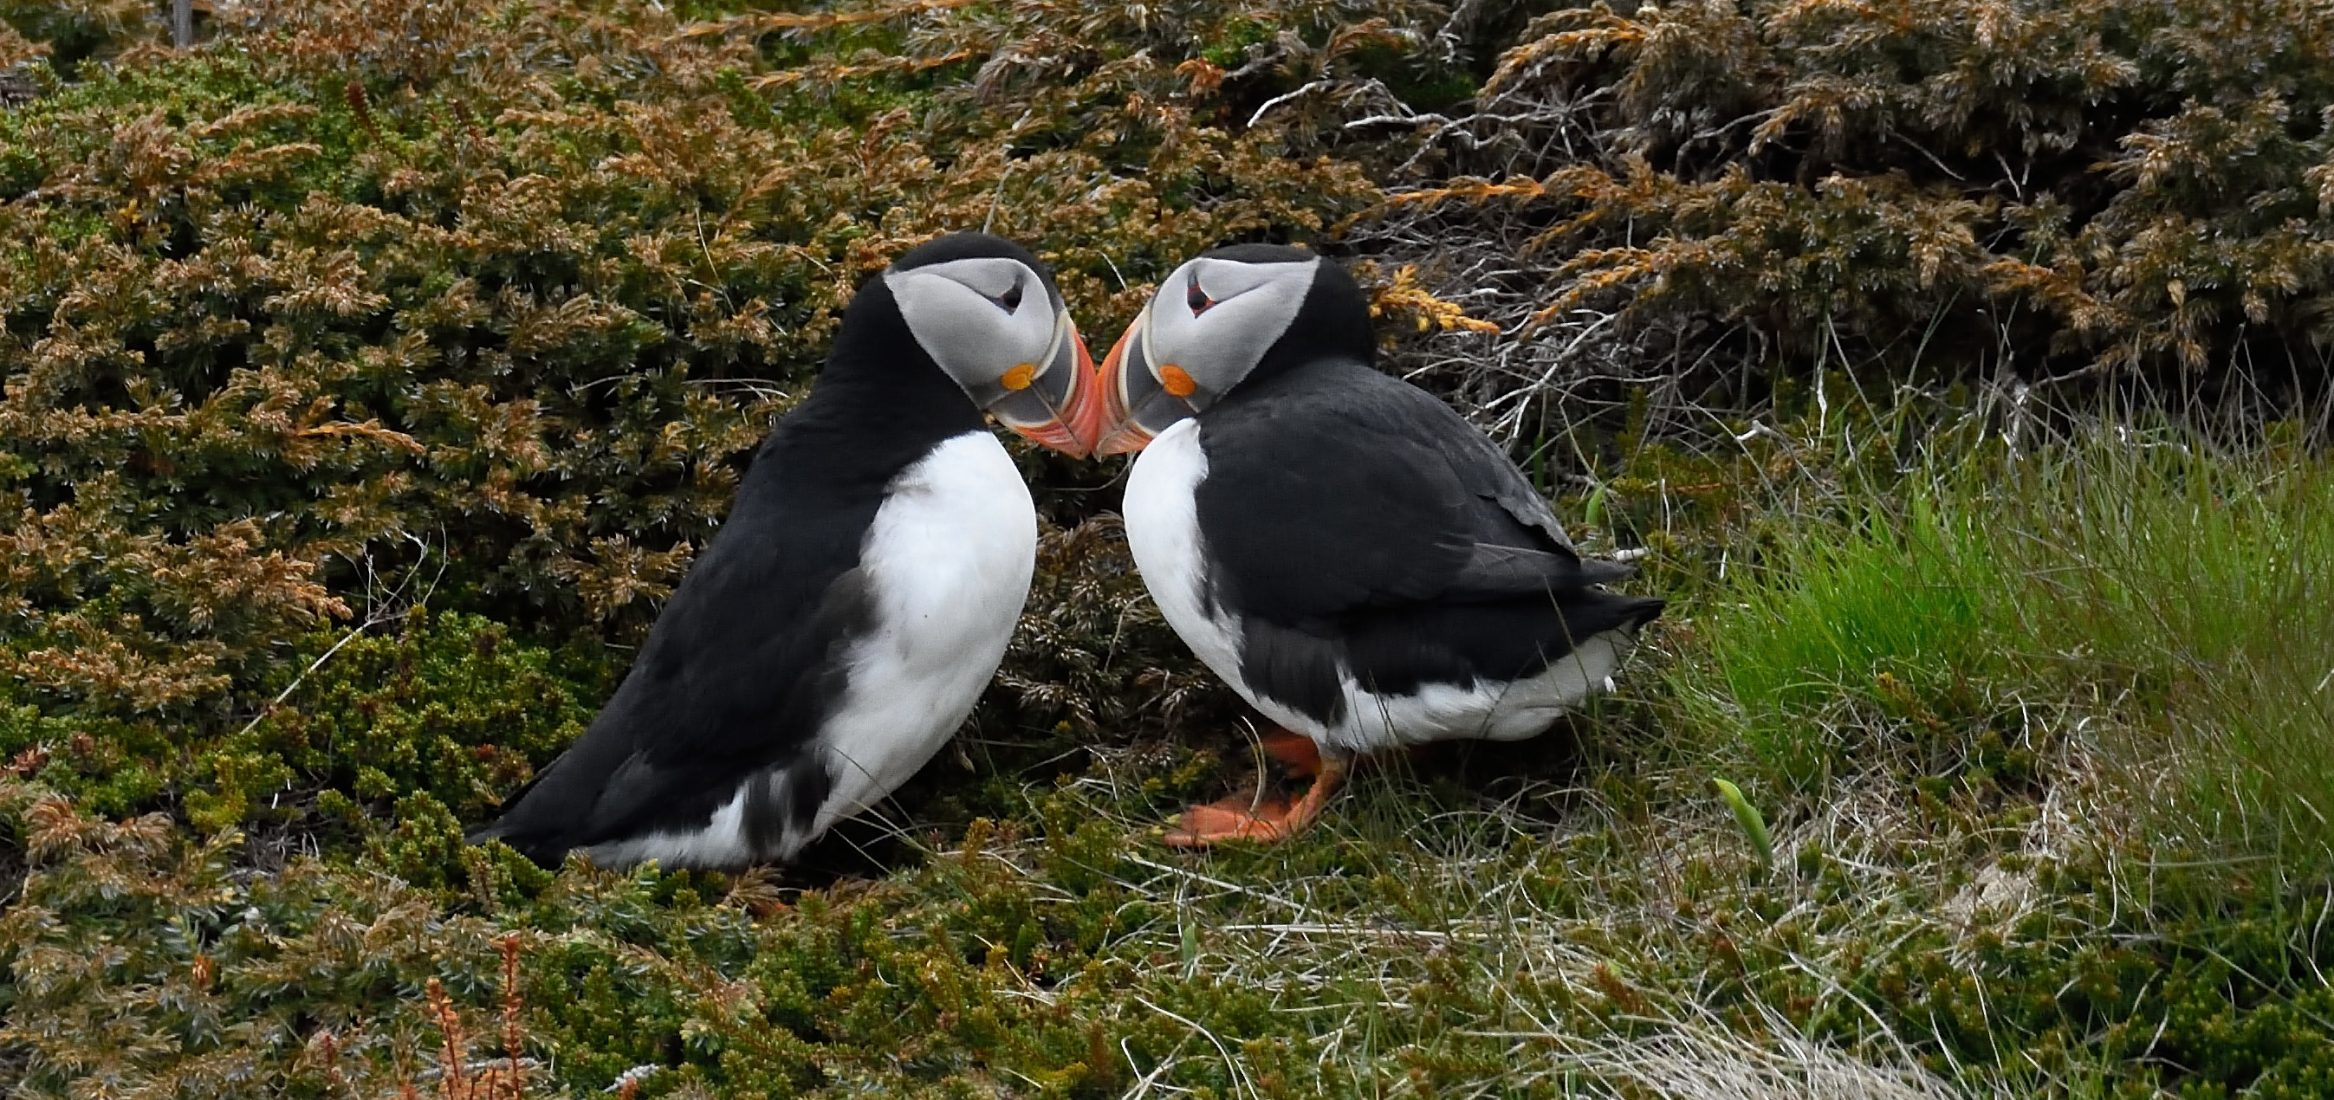 rsbp-project-puffins-photography-nature